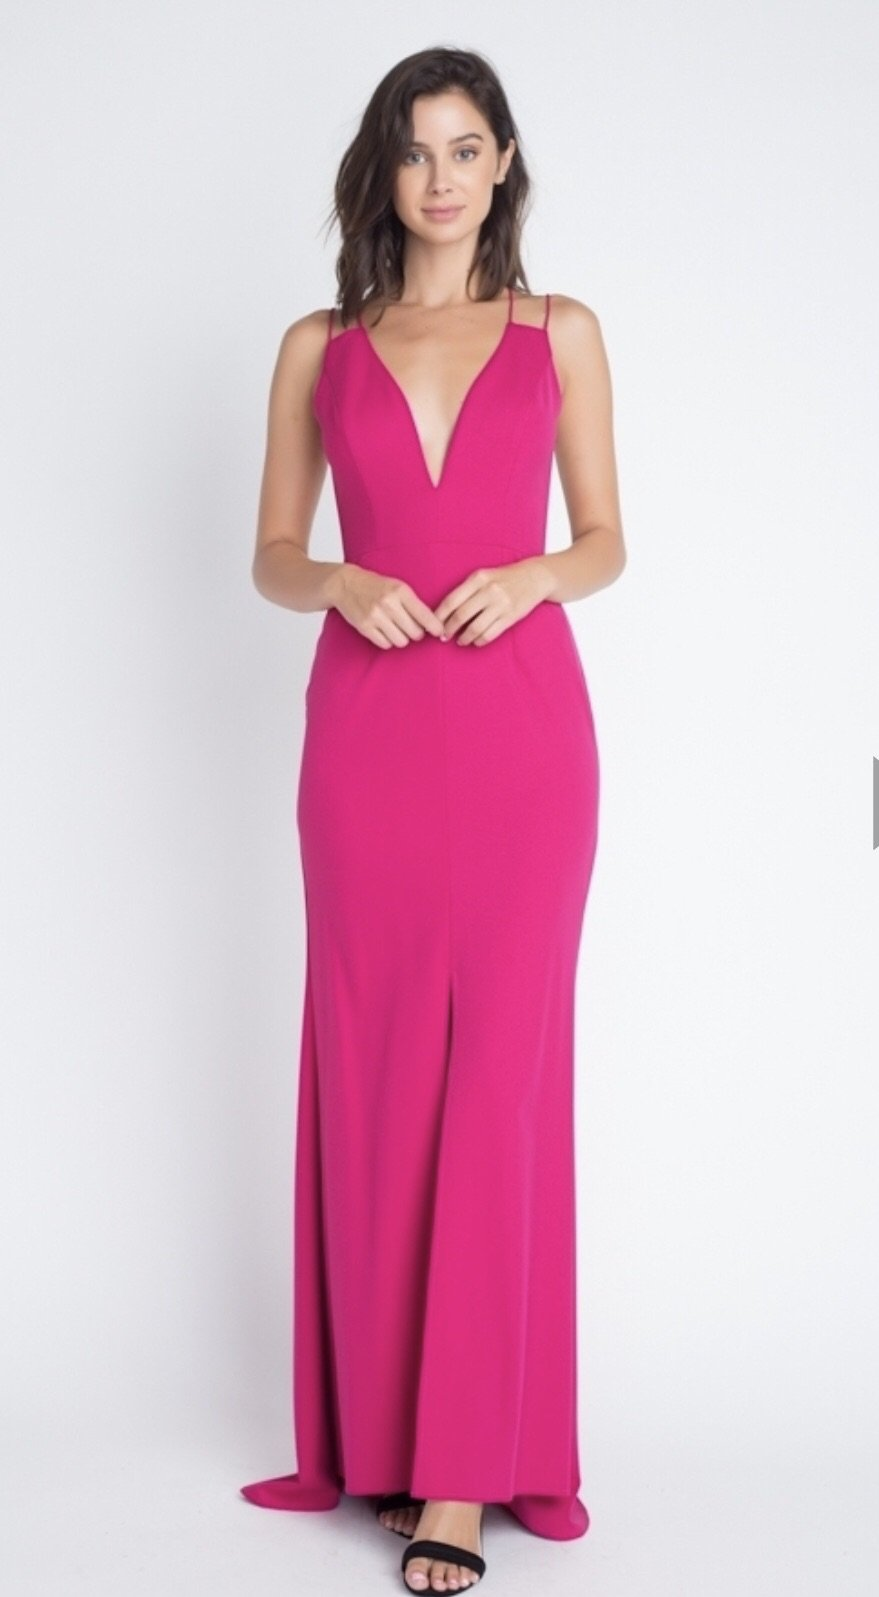 DEEP V MAXI DRESS WITH SPAGHETTI STRAPS AND CROSSBACK